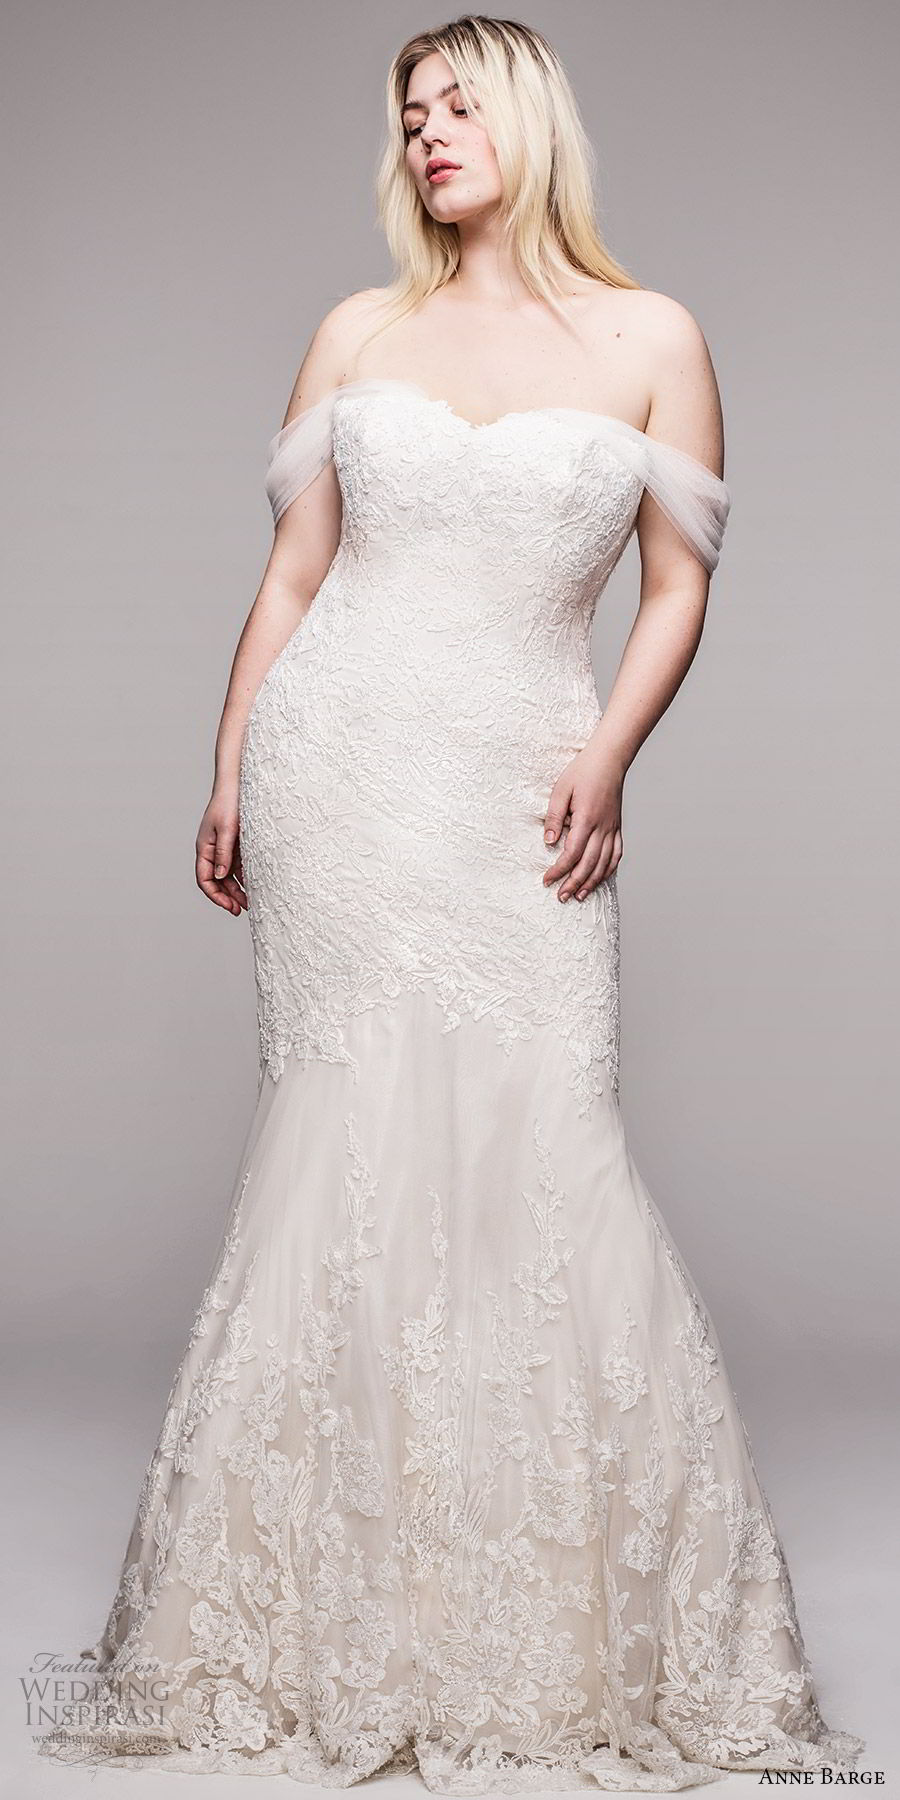 anne barge 2020 bridal plus size off shoulder semi sweetheart fully embellished lace fit flare trumpet wedding dress (10) elegant romantic chapel train mv